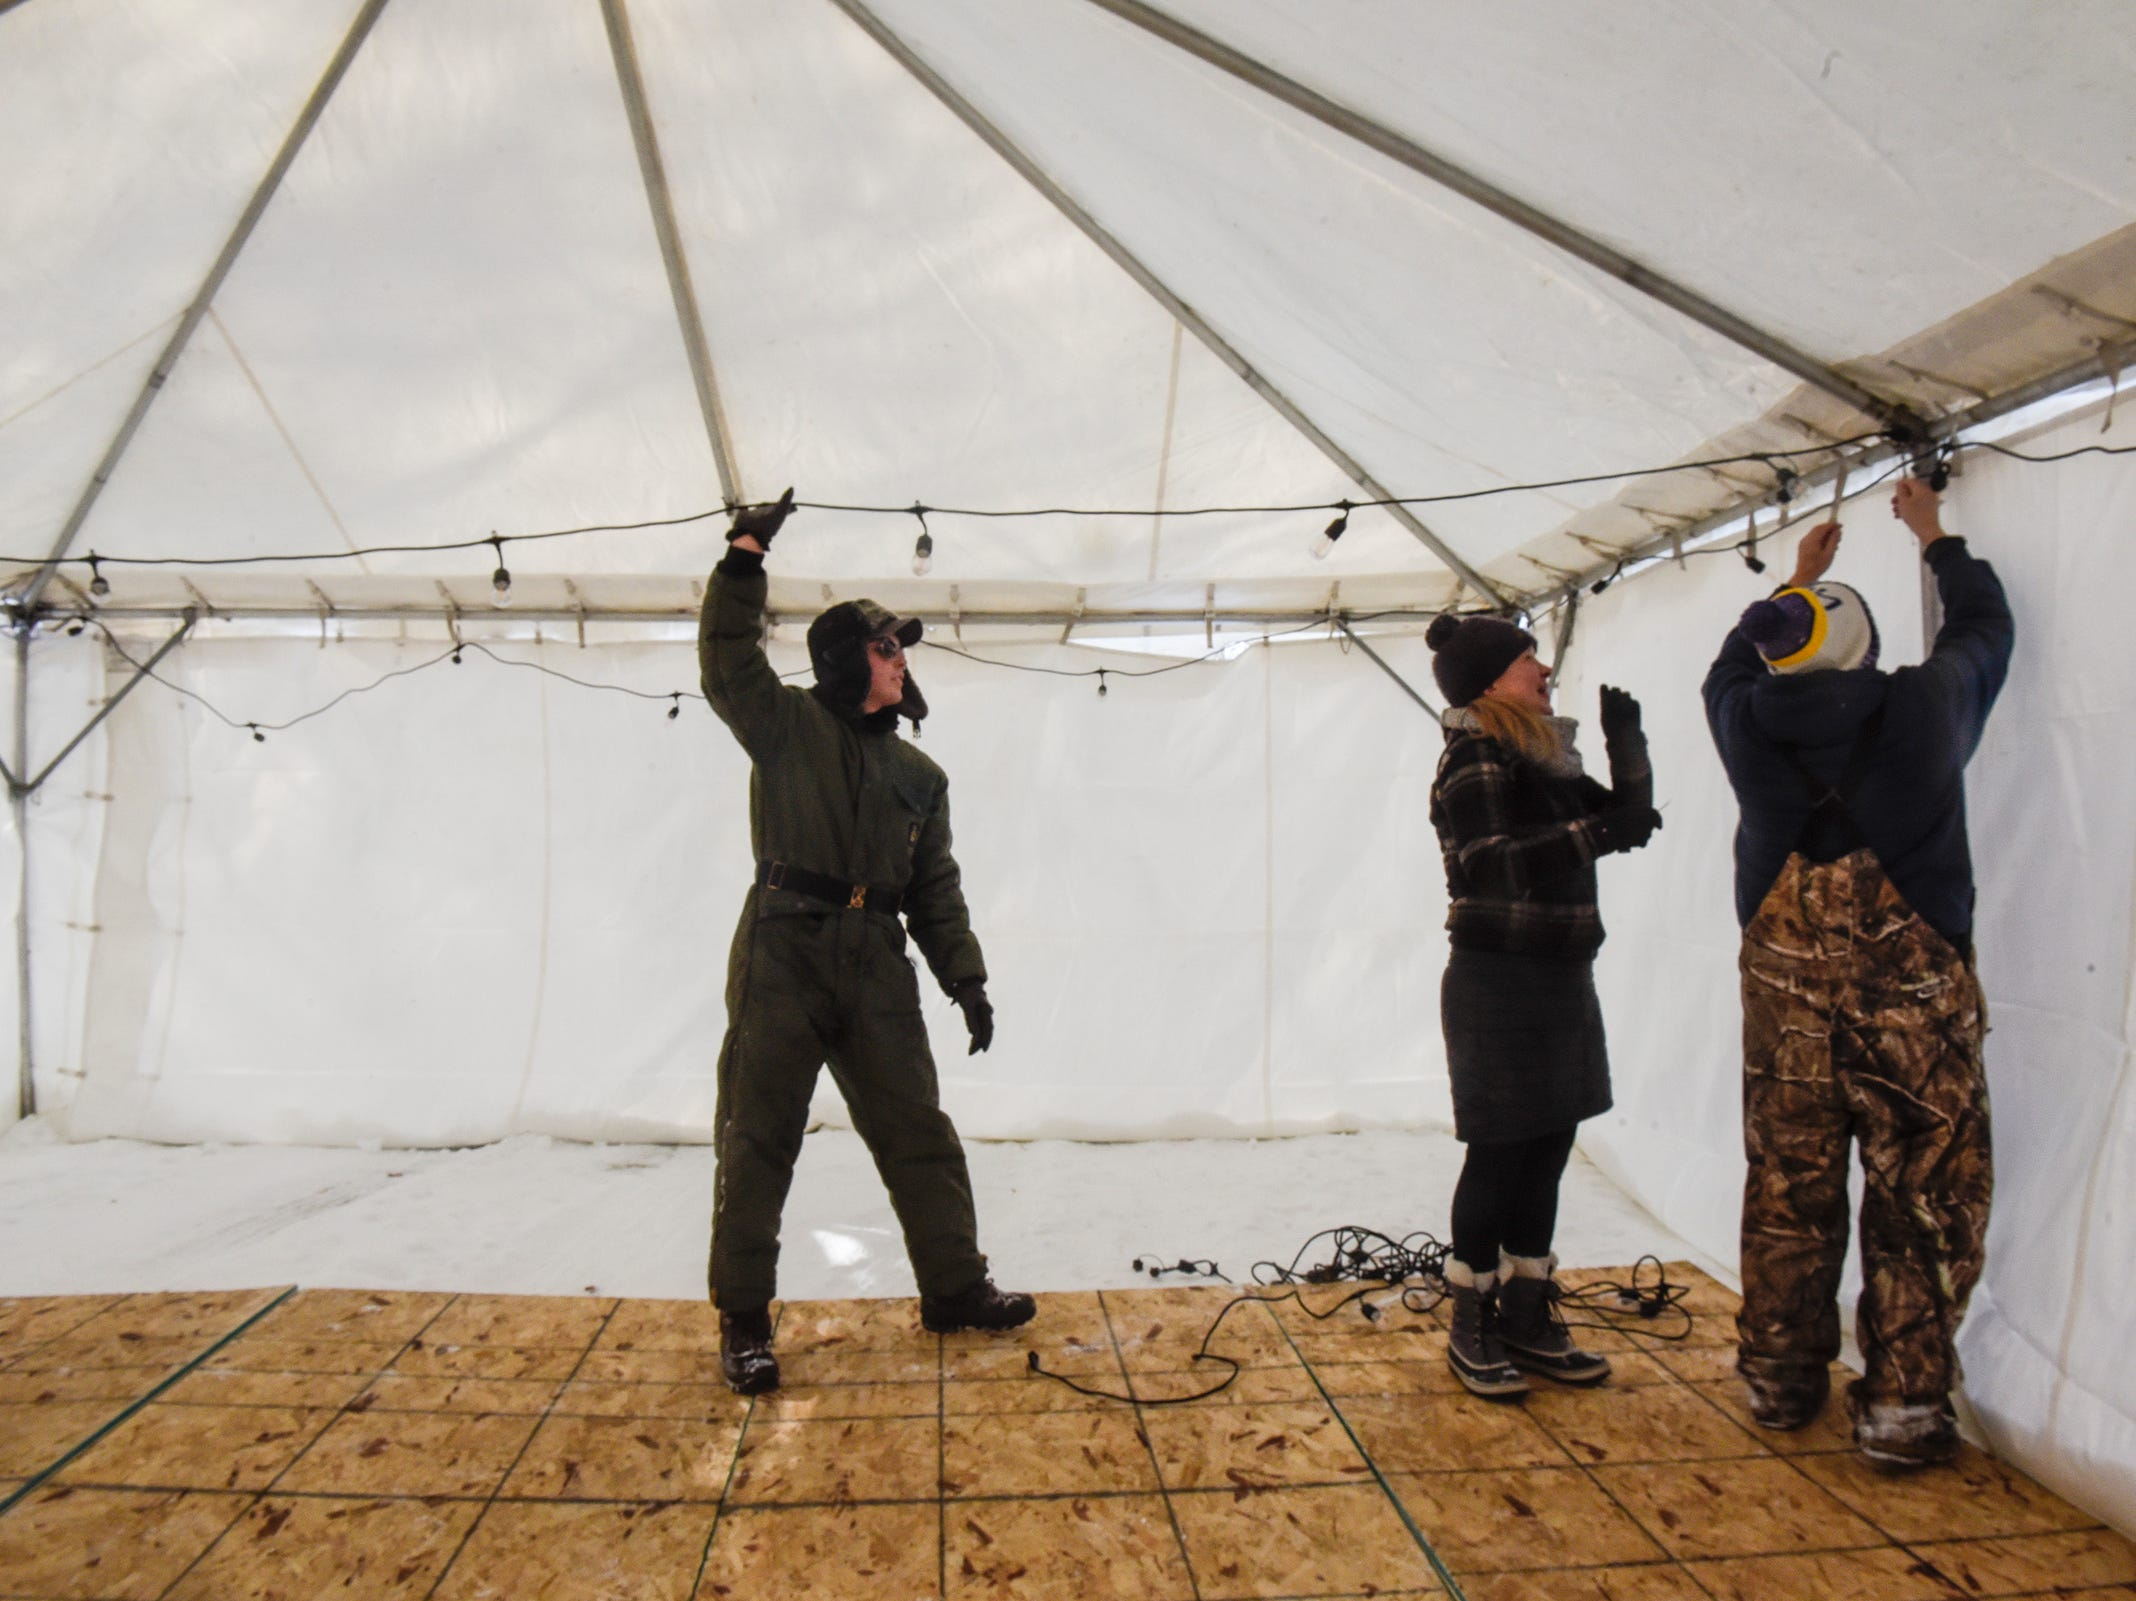 Volunteers string lights in a warming tent near the hockey rinks while preparing for the Granite City Outdoor Hockey Festival Friday, Feb. 1, at Blackberry Ridge Golf Club in Sartell.